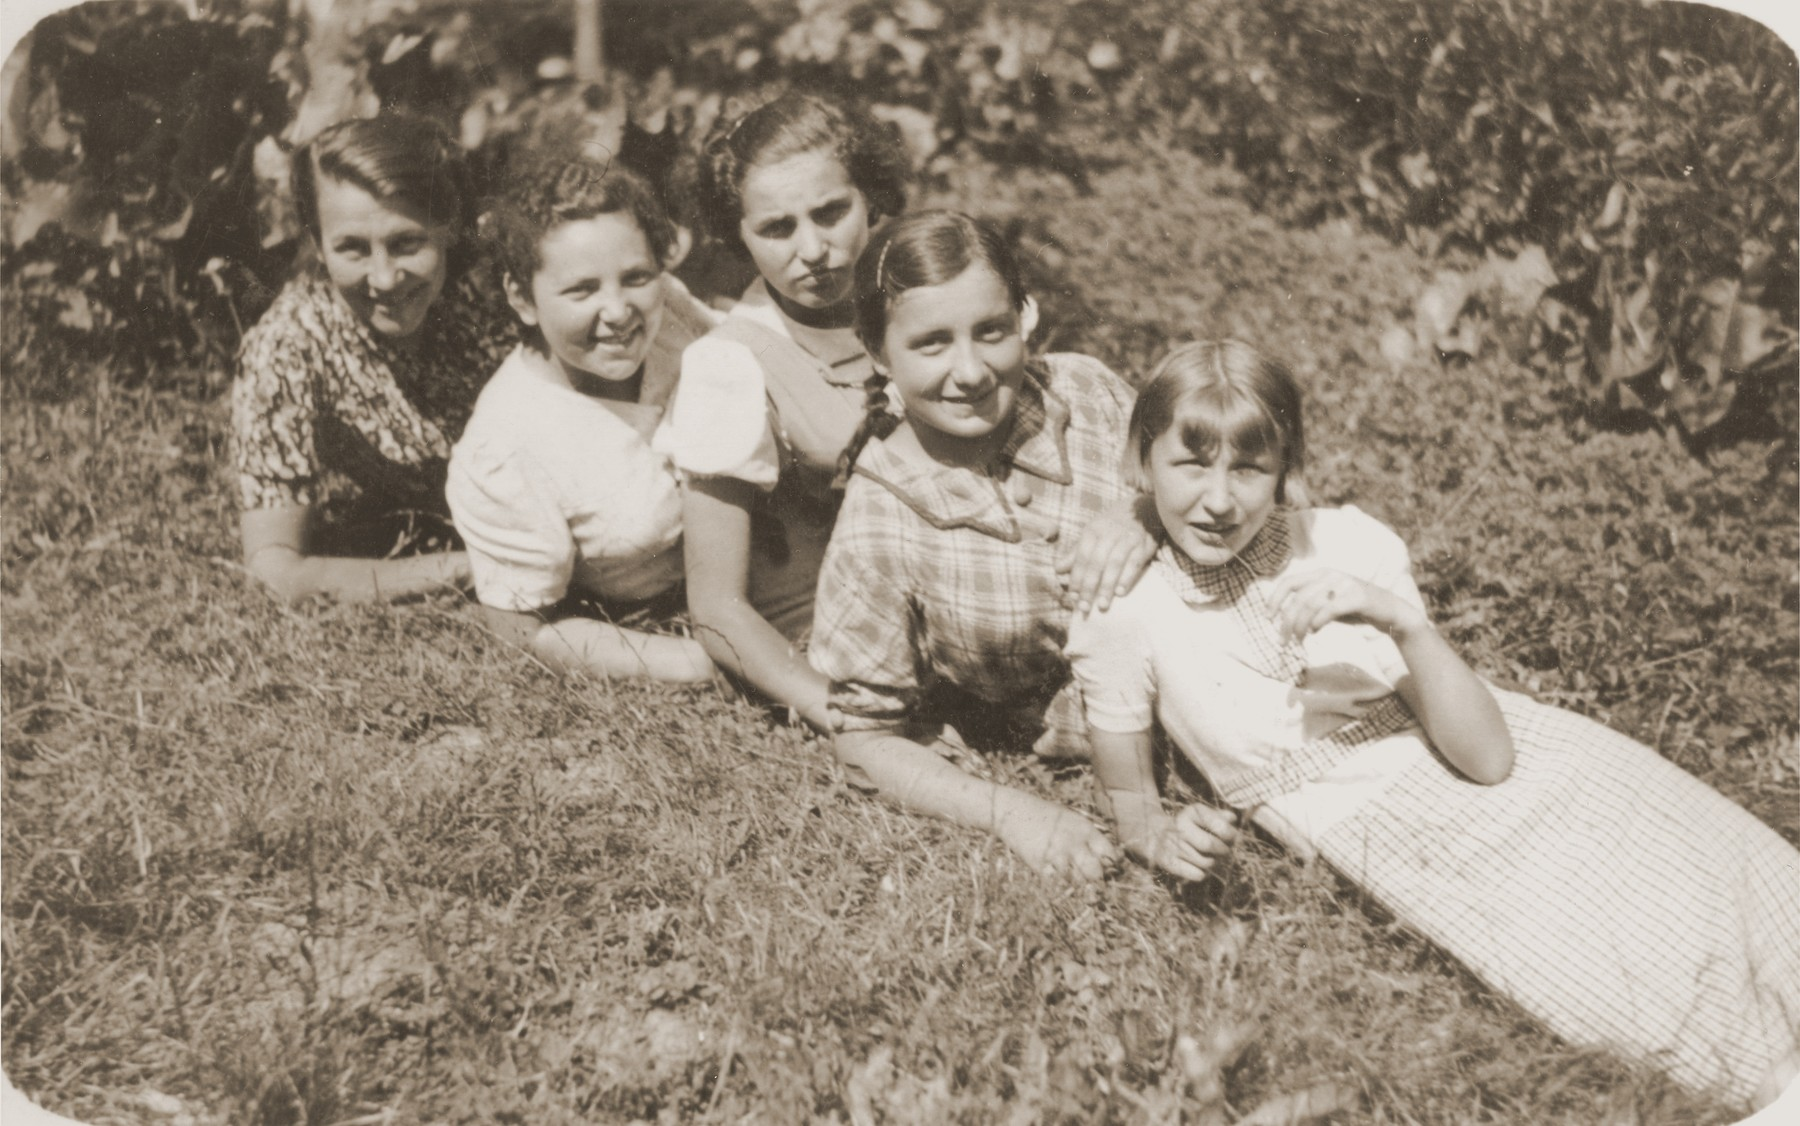 Four girls pose outside in the grass with their sewing teacher.  Among those pictured is Basia Gurfein (second from the left). The teacher is on the far left.